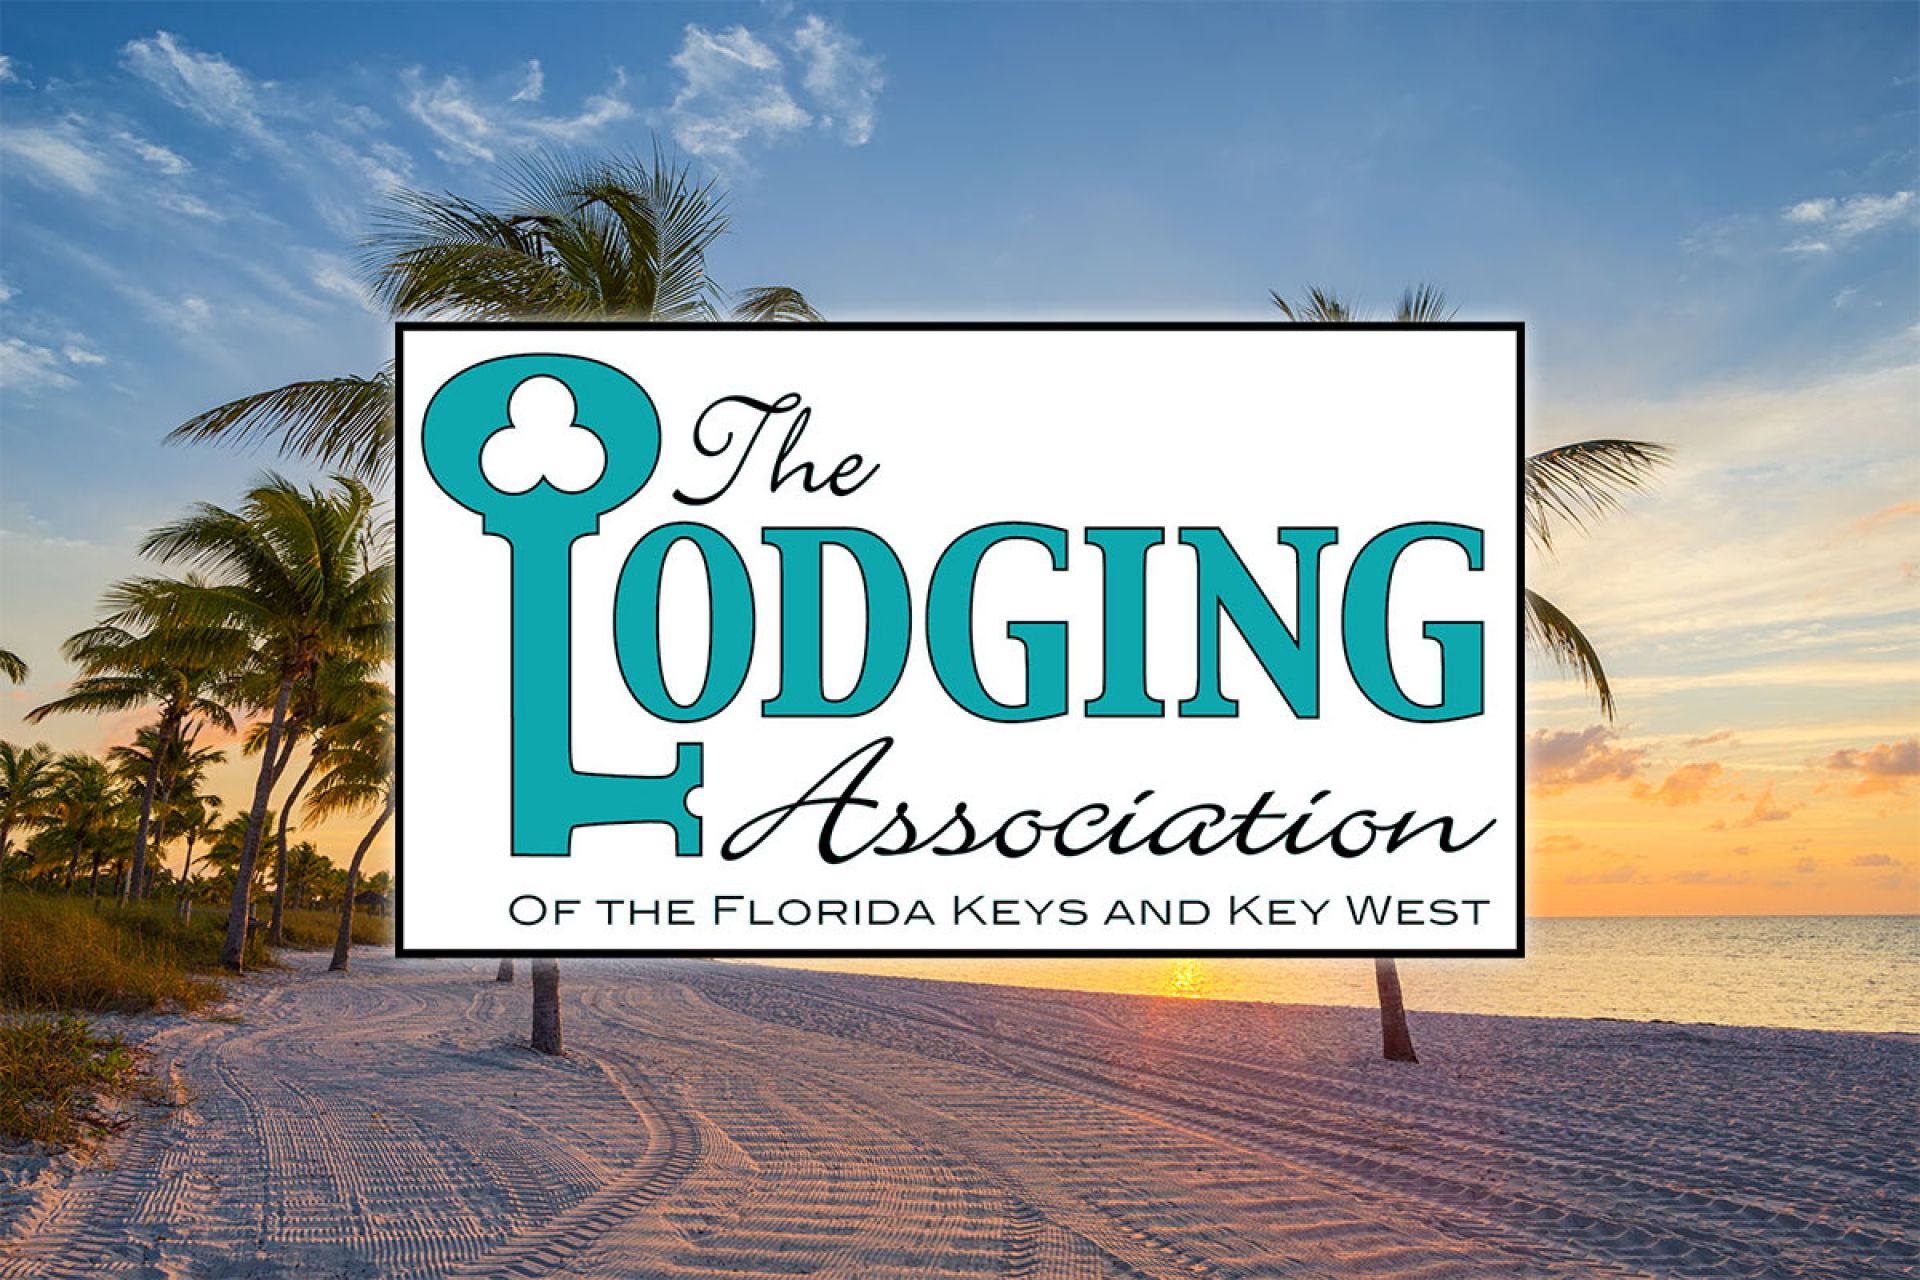 Key's Lodging logo